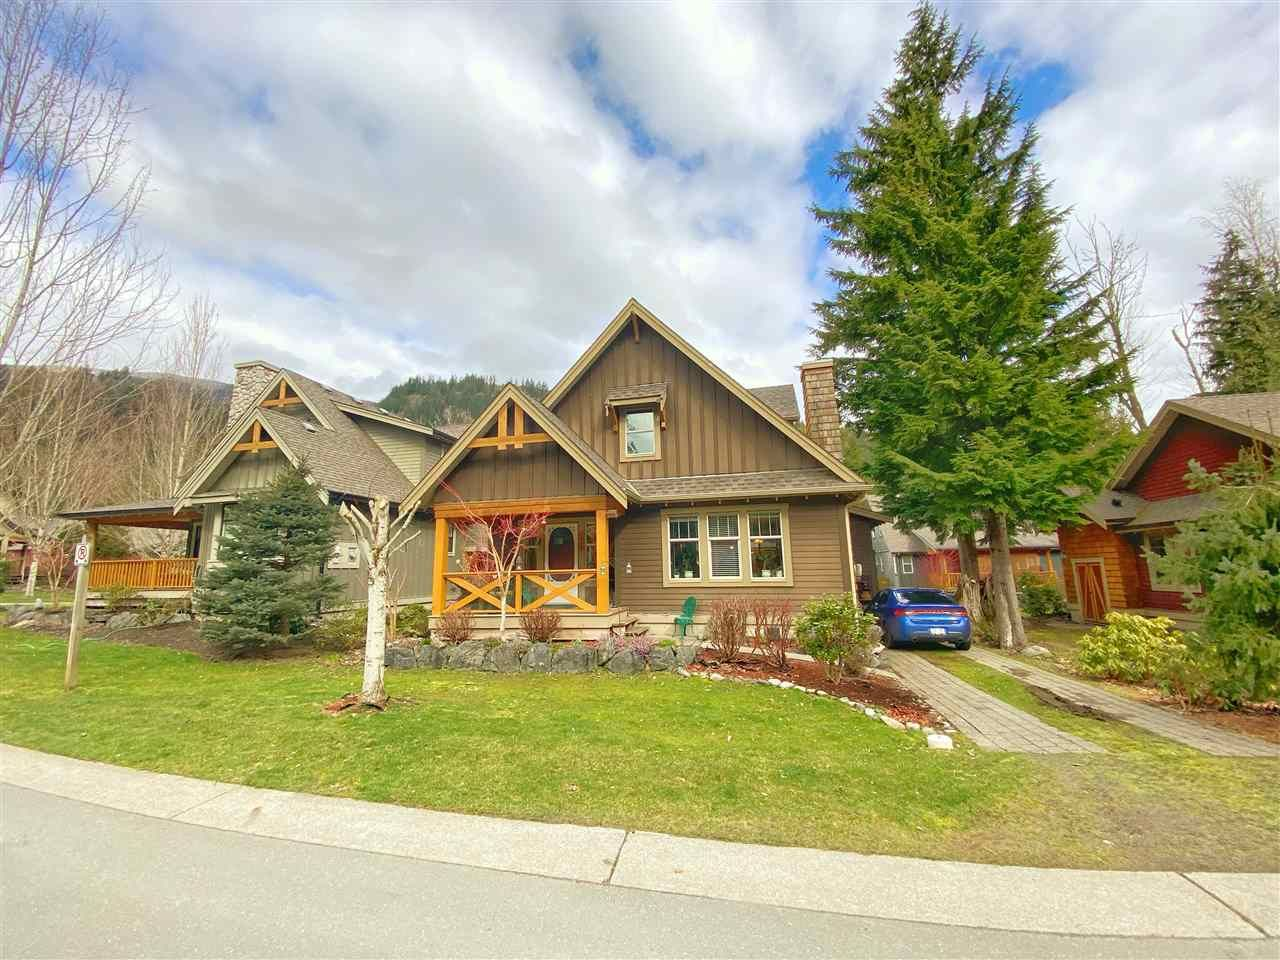 """Main Photo: 1858 WOOD DUCK Way: Lindell Beach House for sale in """"THE COTTAGES AT CULTUS LAKE"""" (Cultus Lake)  : MLS®# R2555828"""